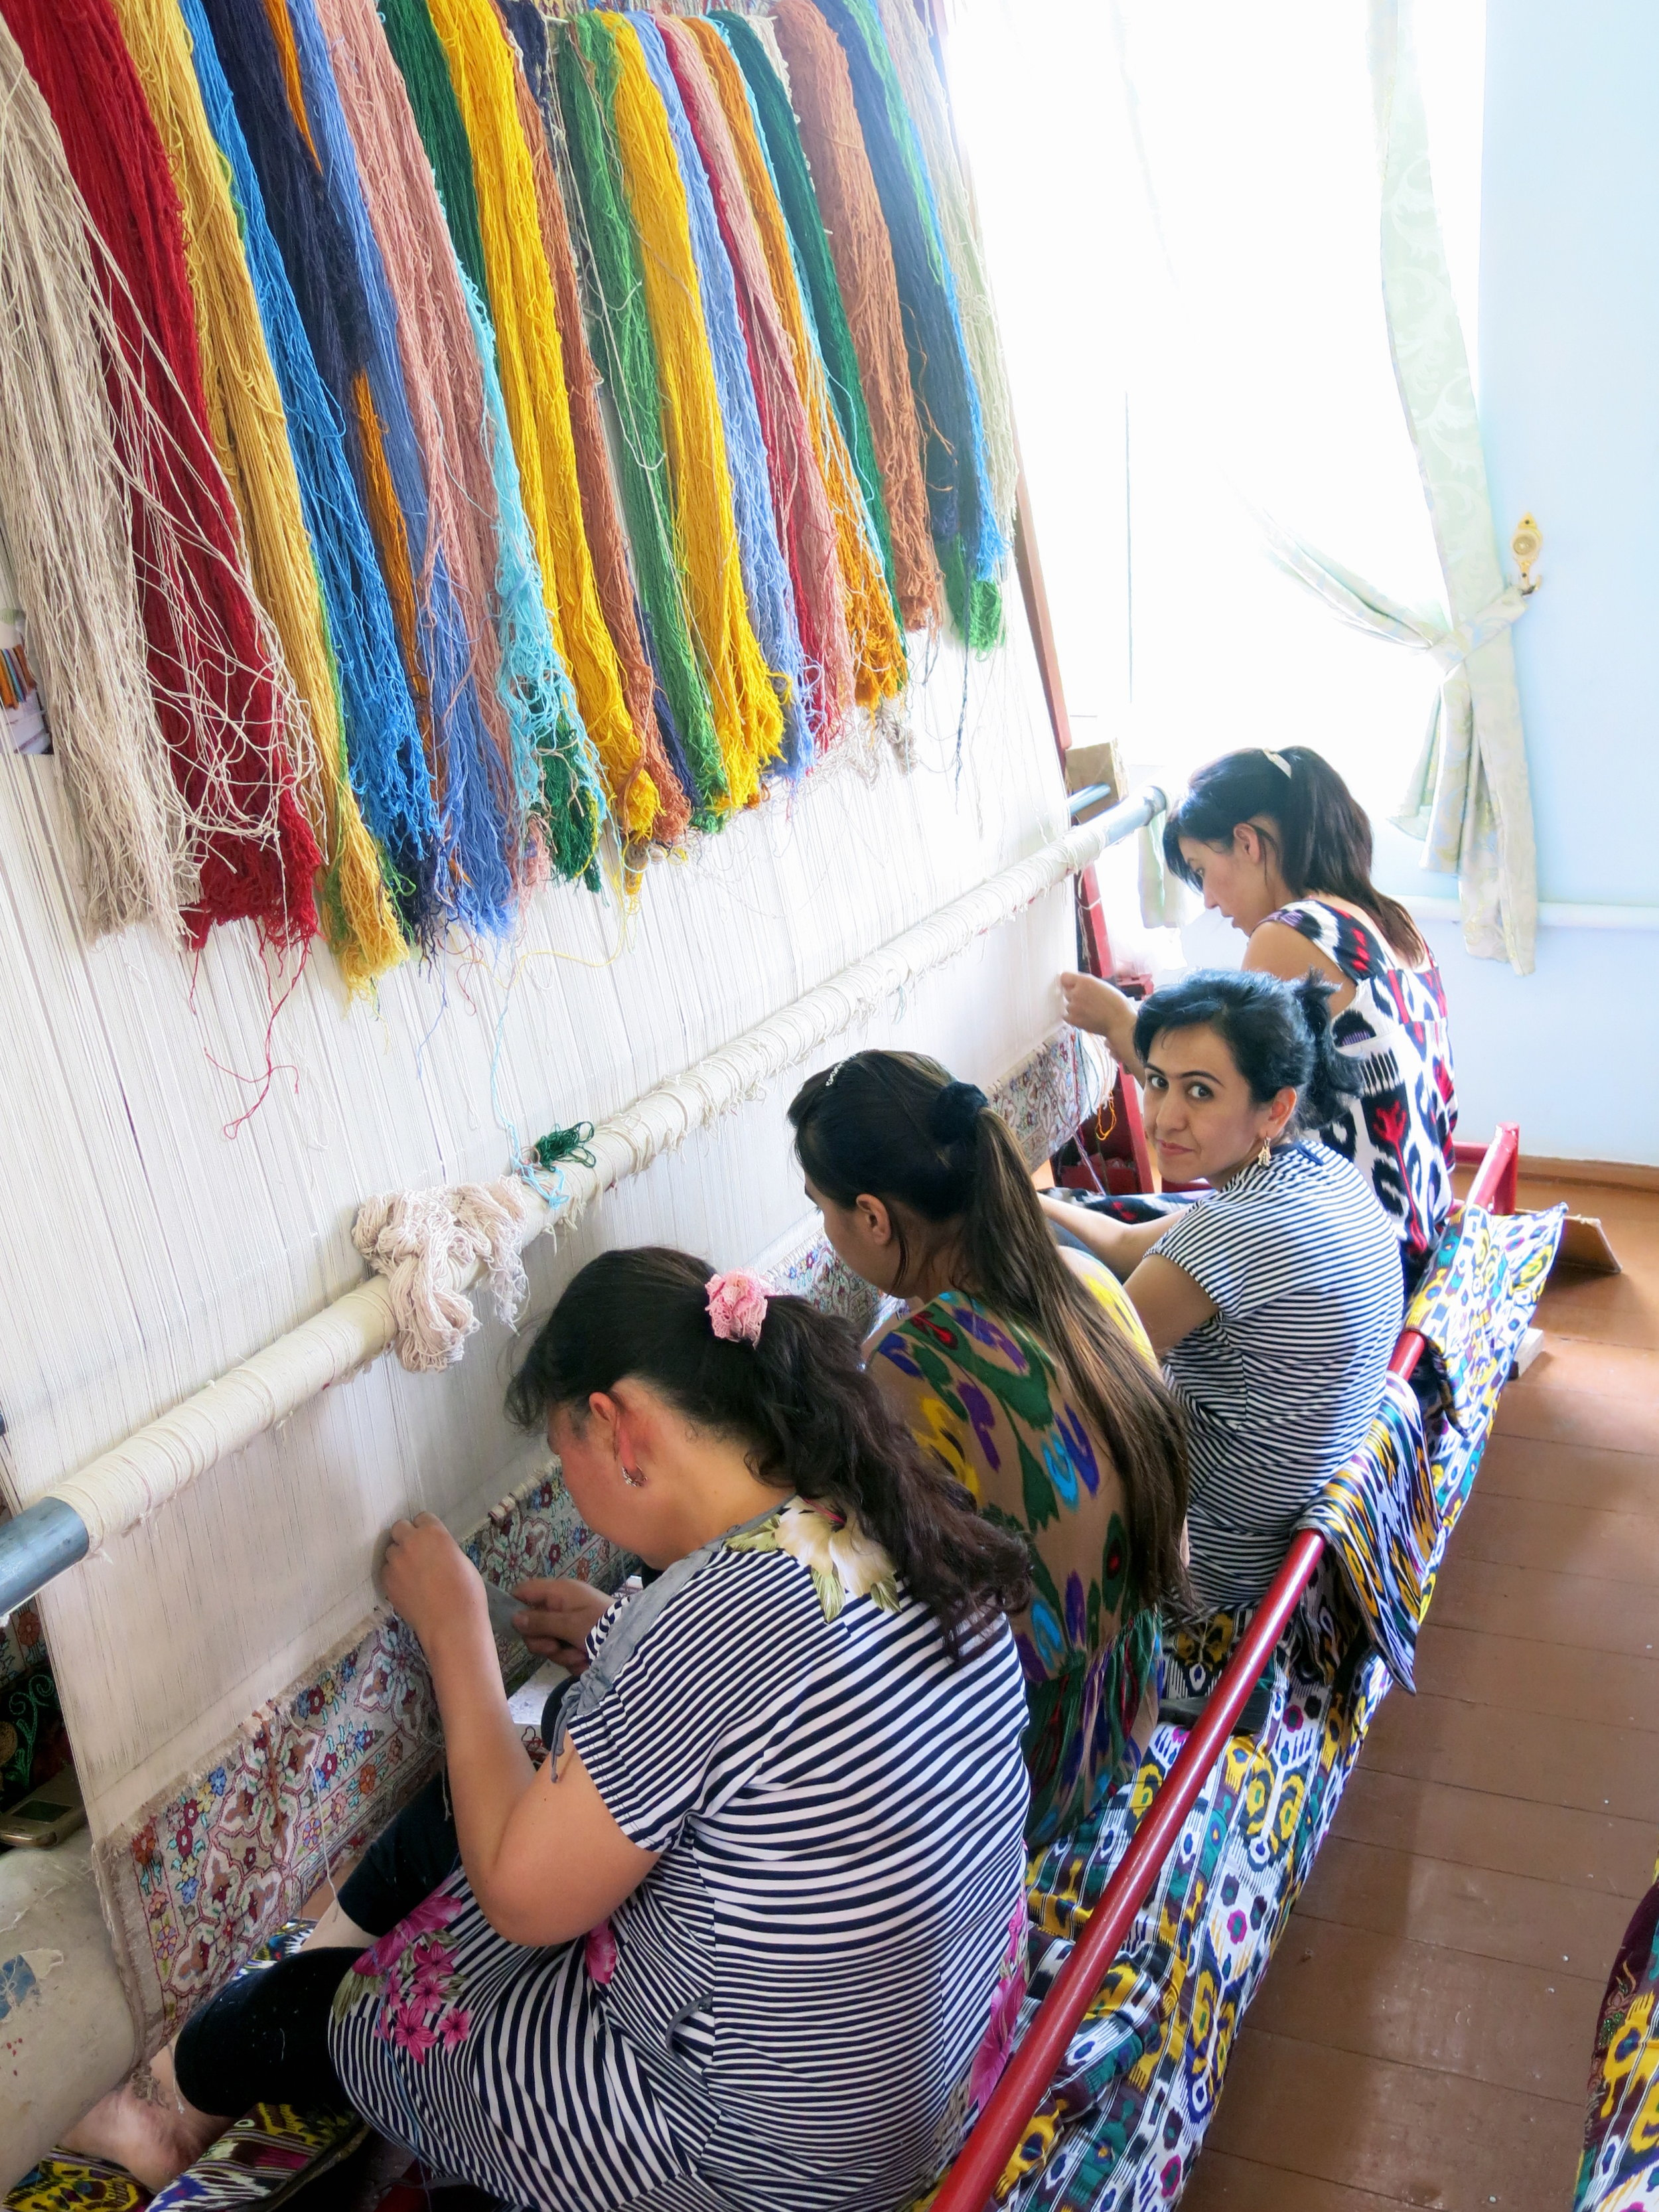 Weaving silk carpet is a an art of patience for these women